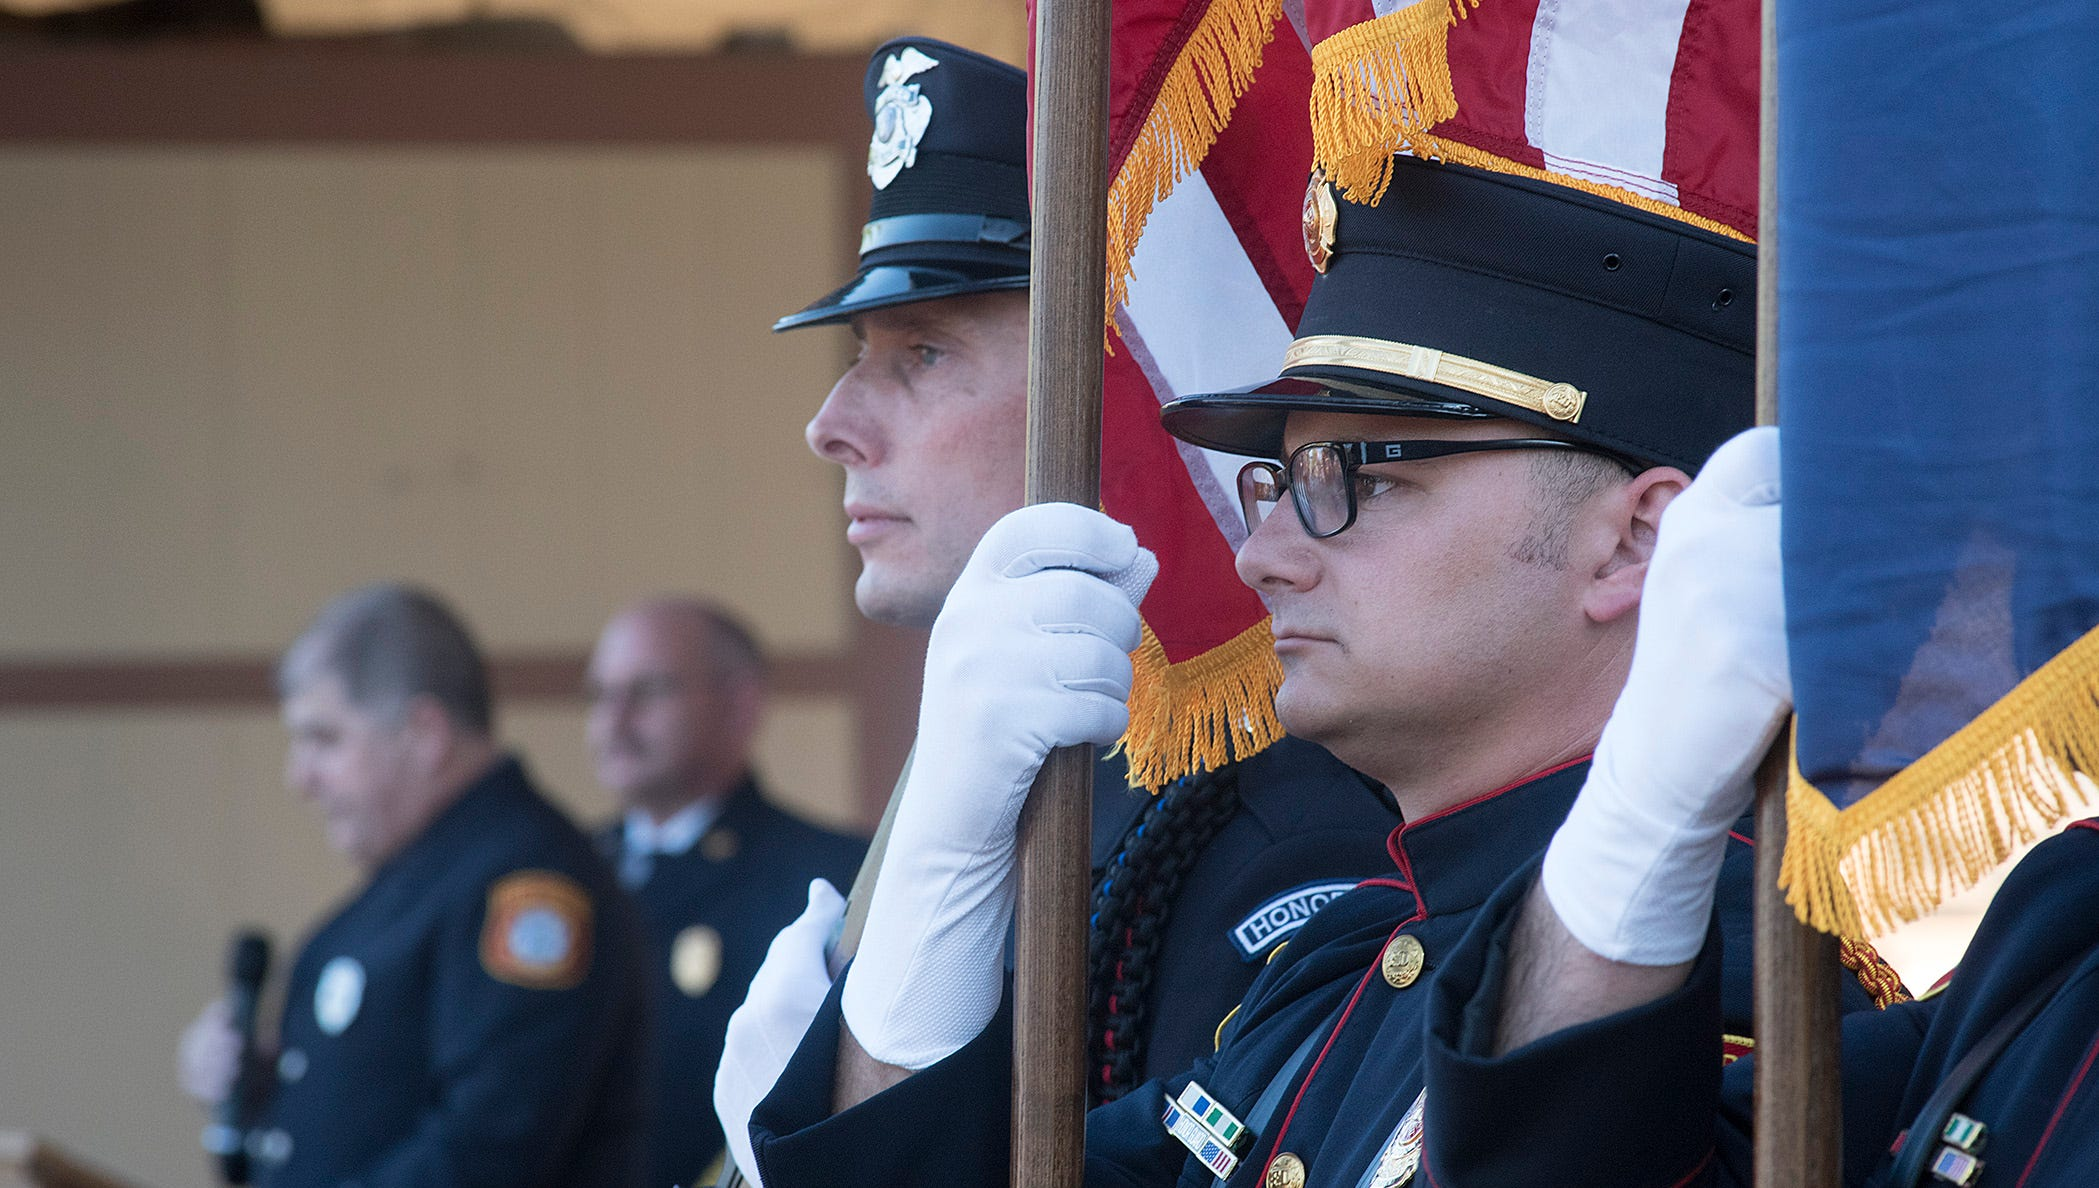 Never forget: Patriots Day honors first responders killed on 9/11